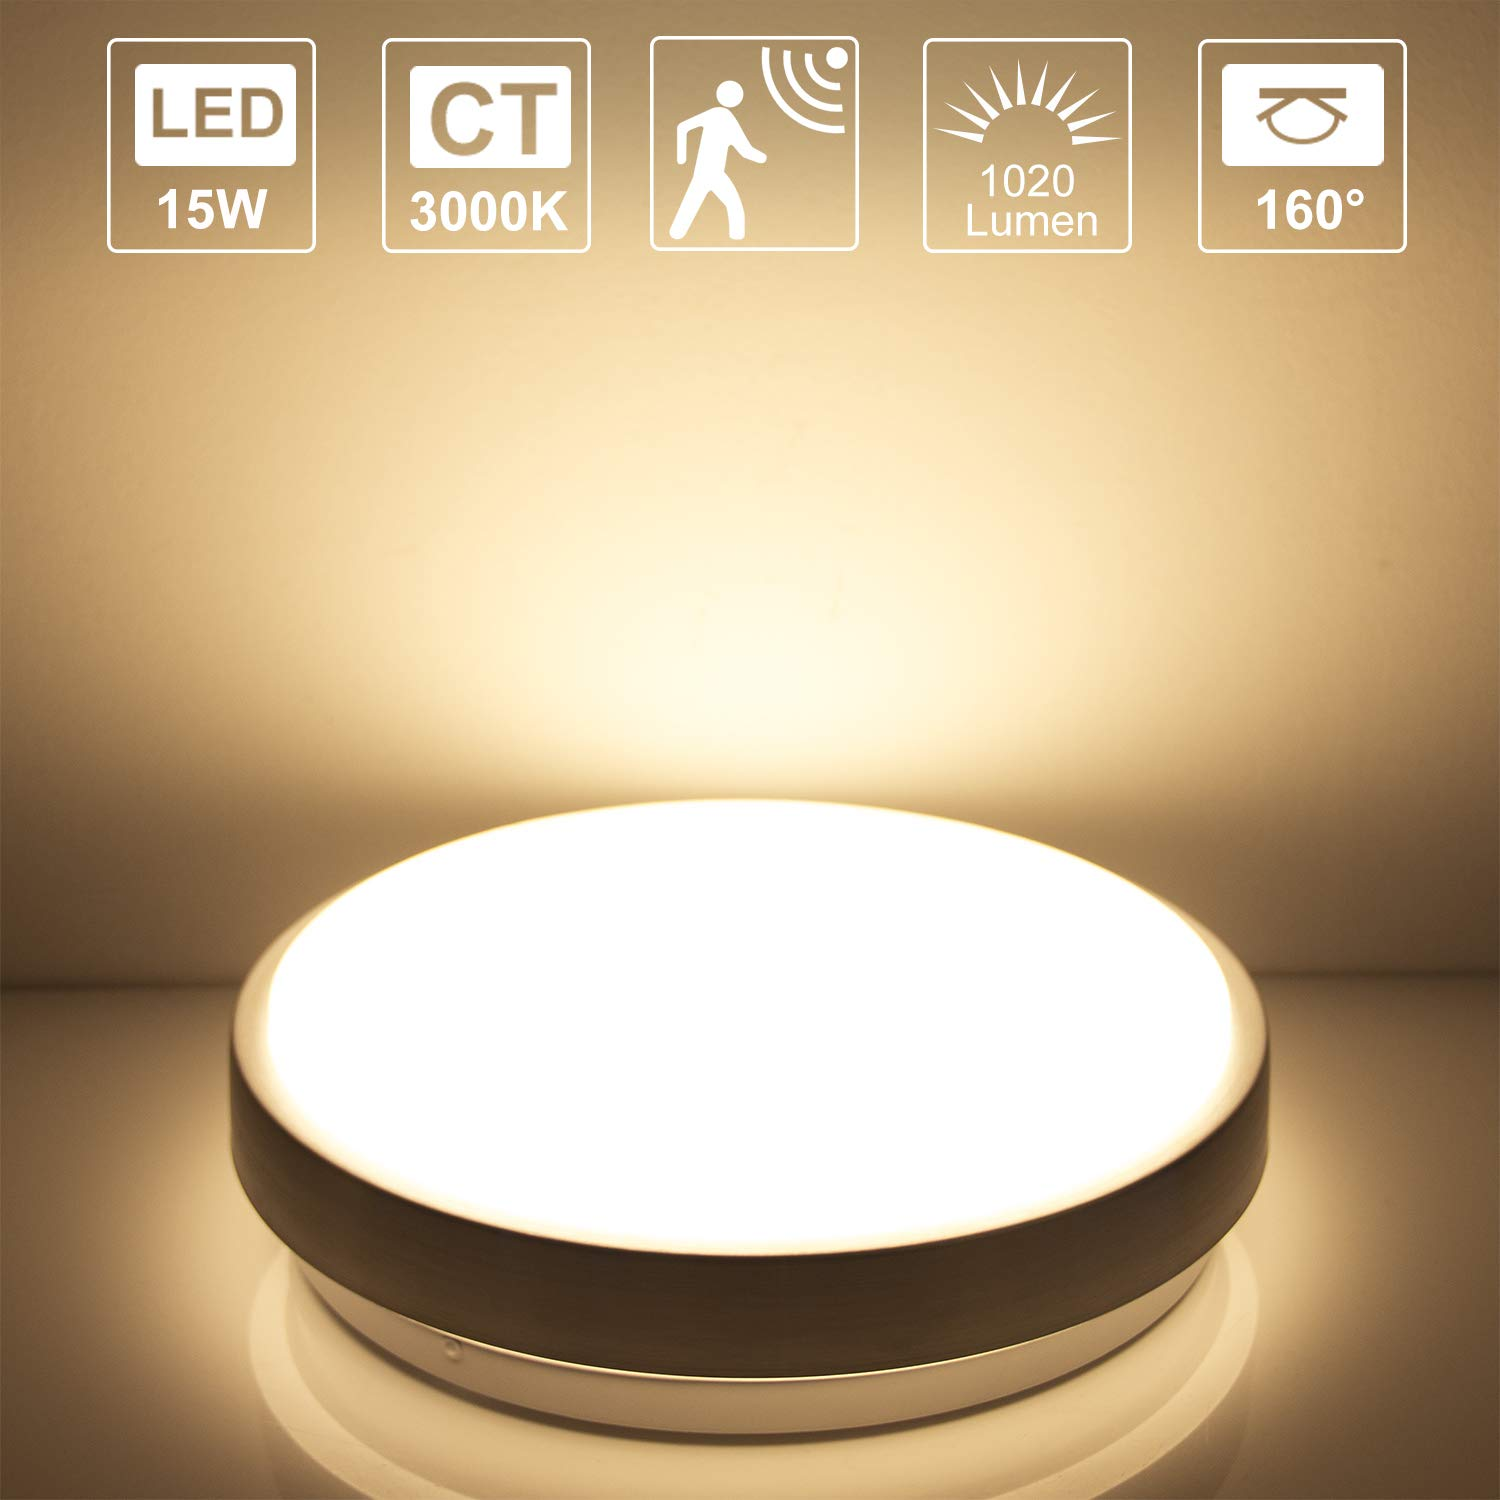 Lineway Ceiling Light With Motion Sensor 15w Ip44 3000k Warm White Activated Led Dice Radar Sensing Flush